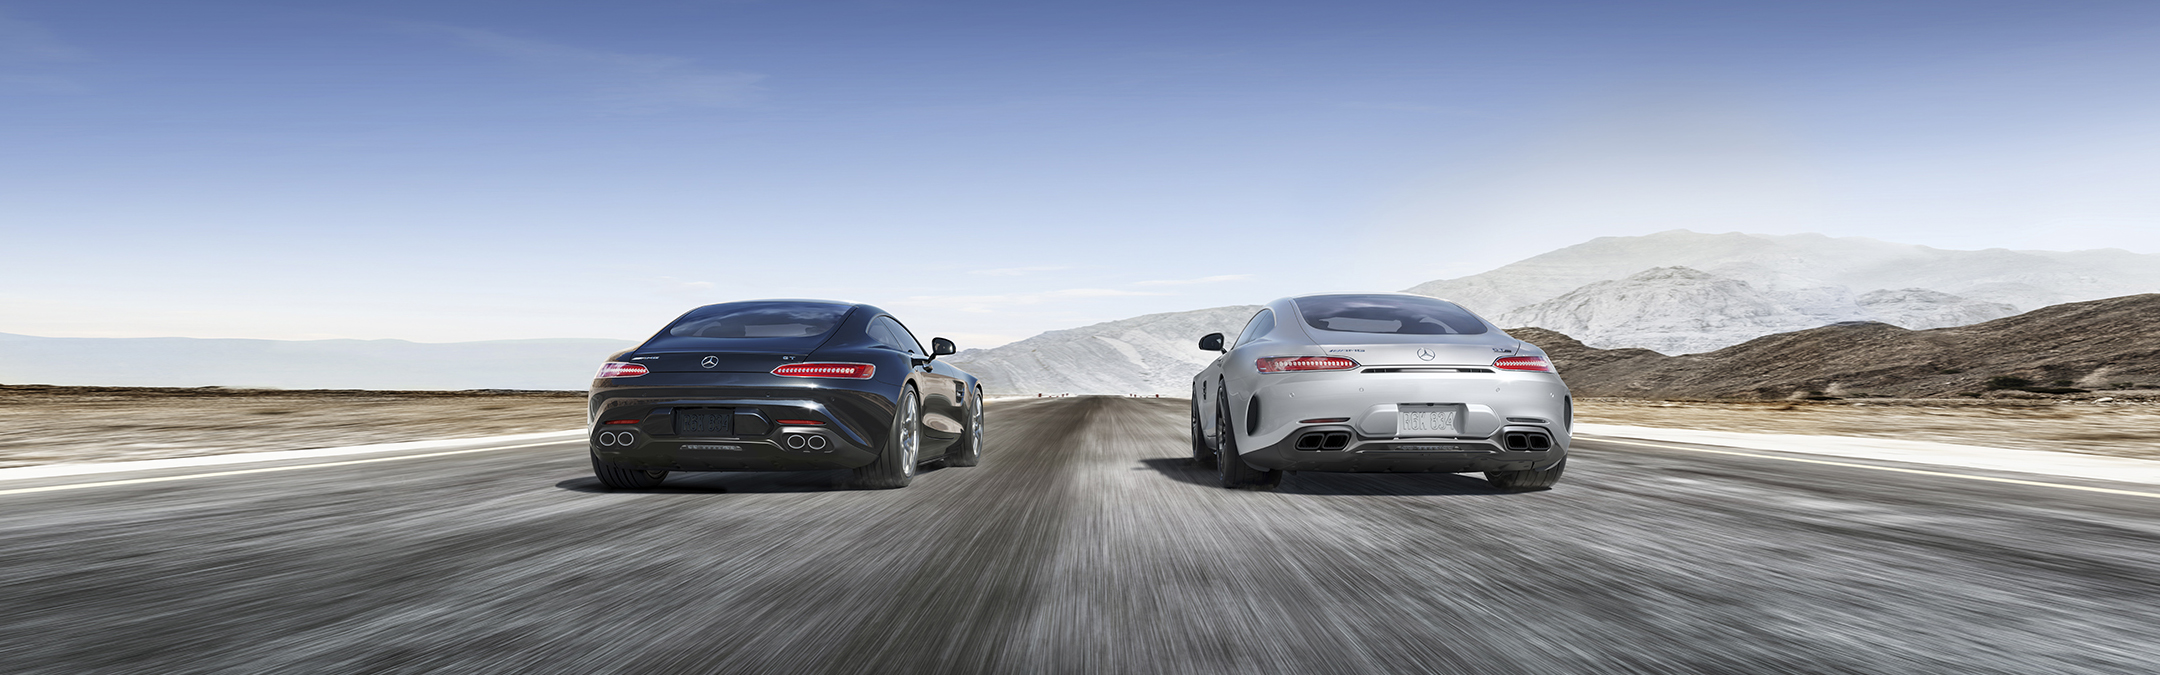 2021 AMG GT COUPE